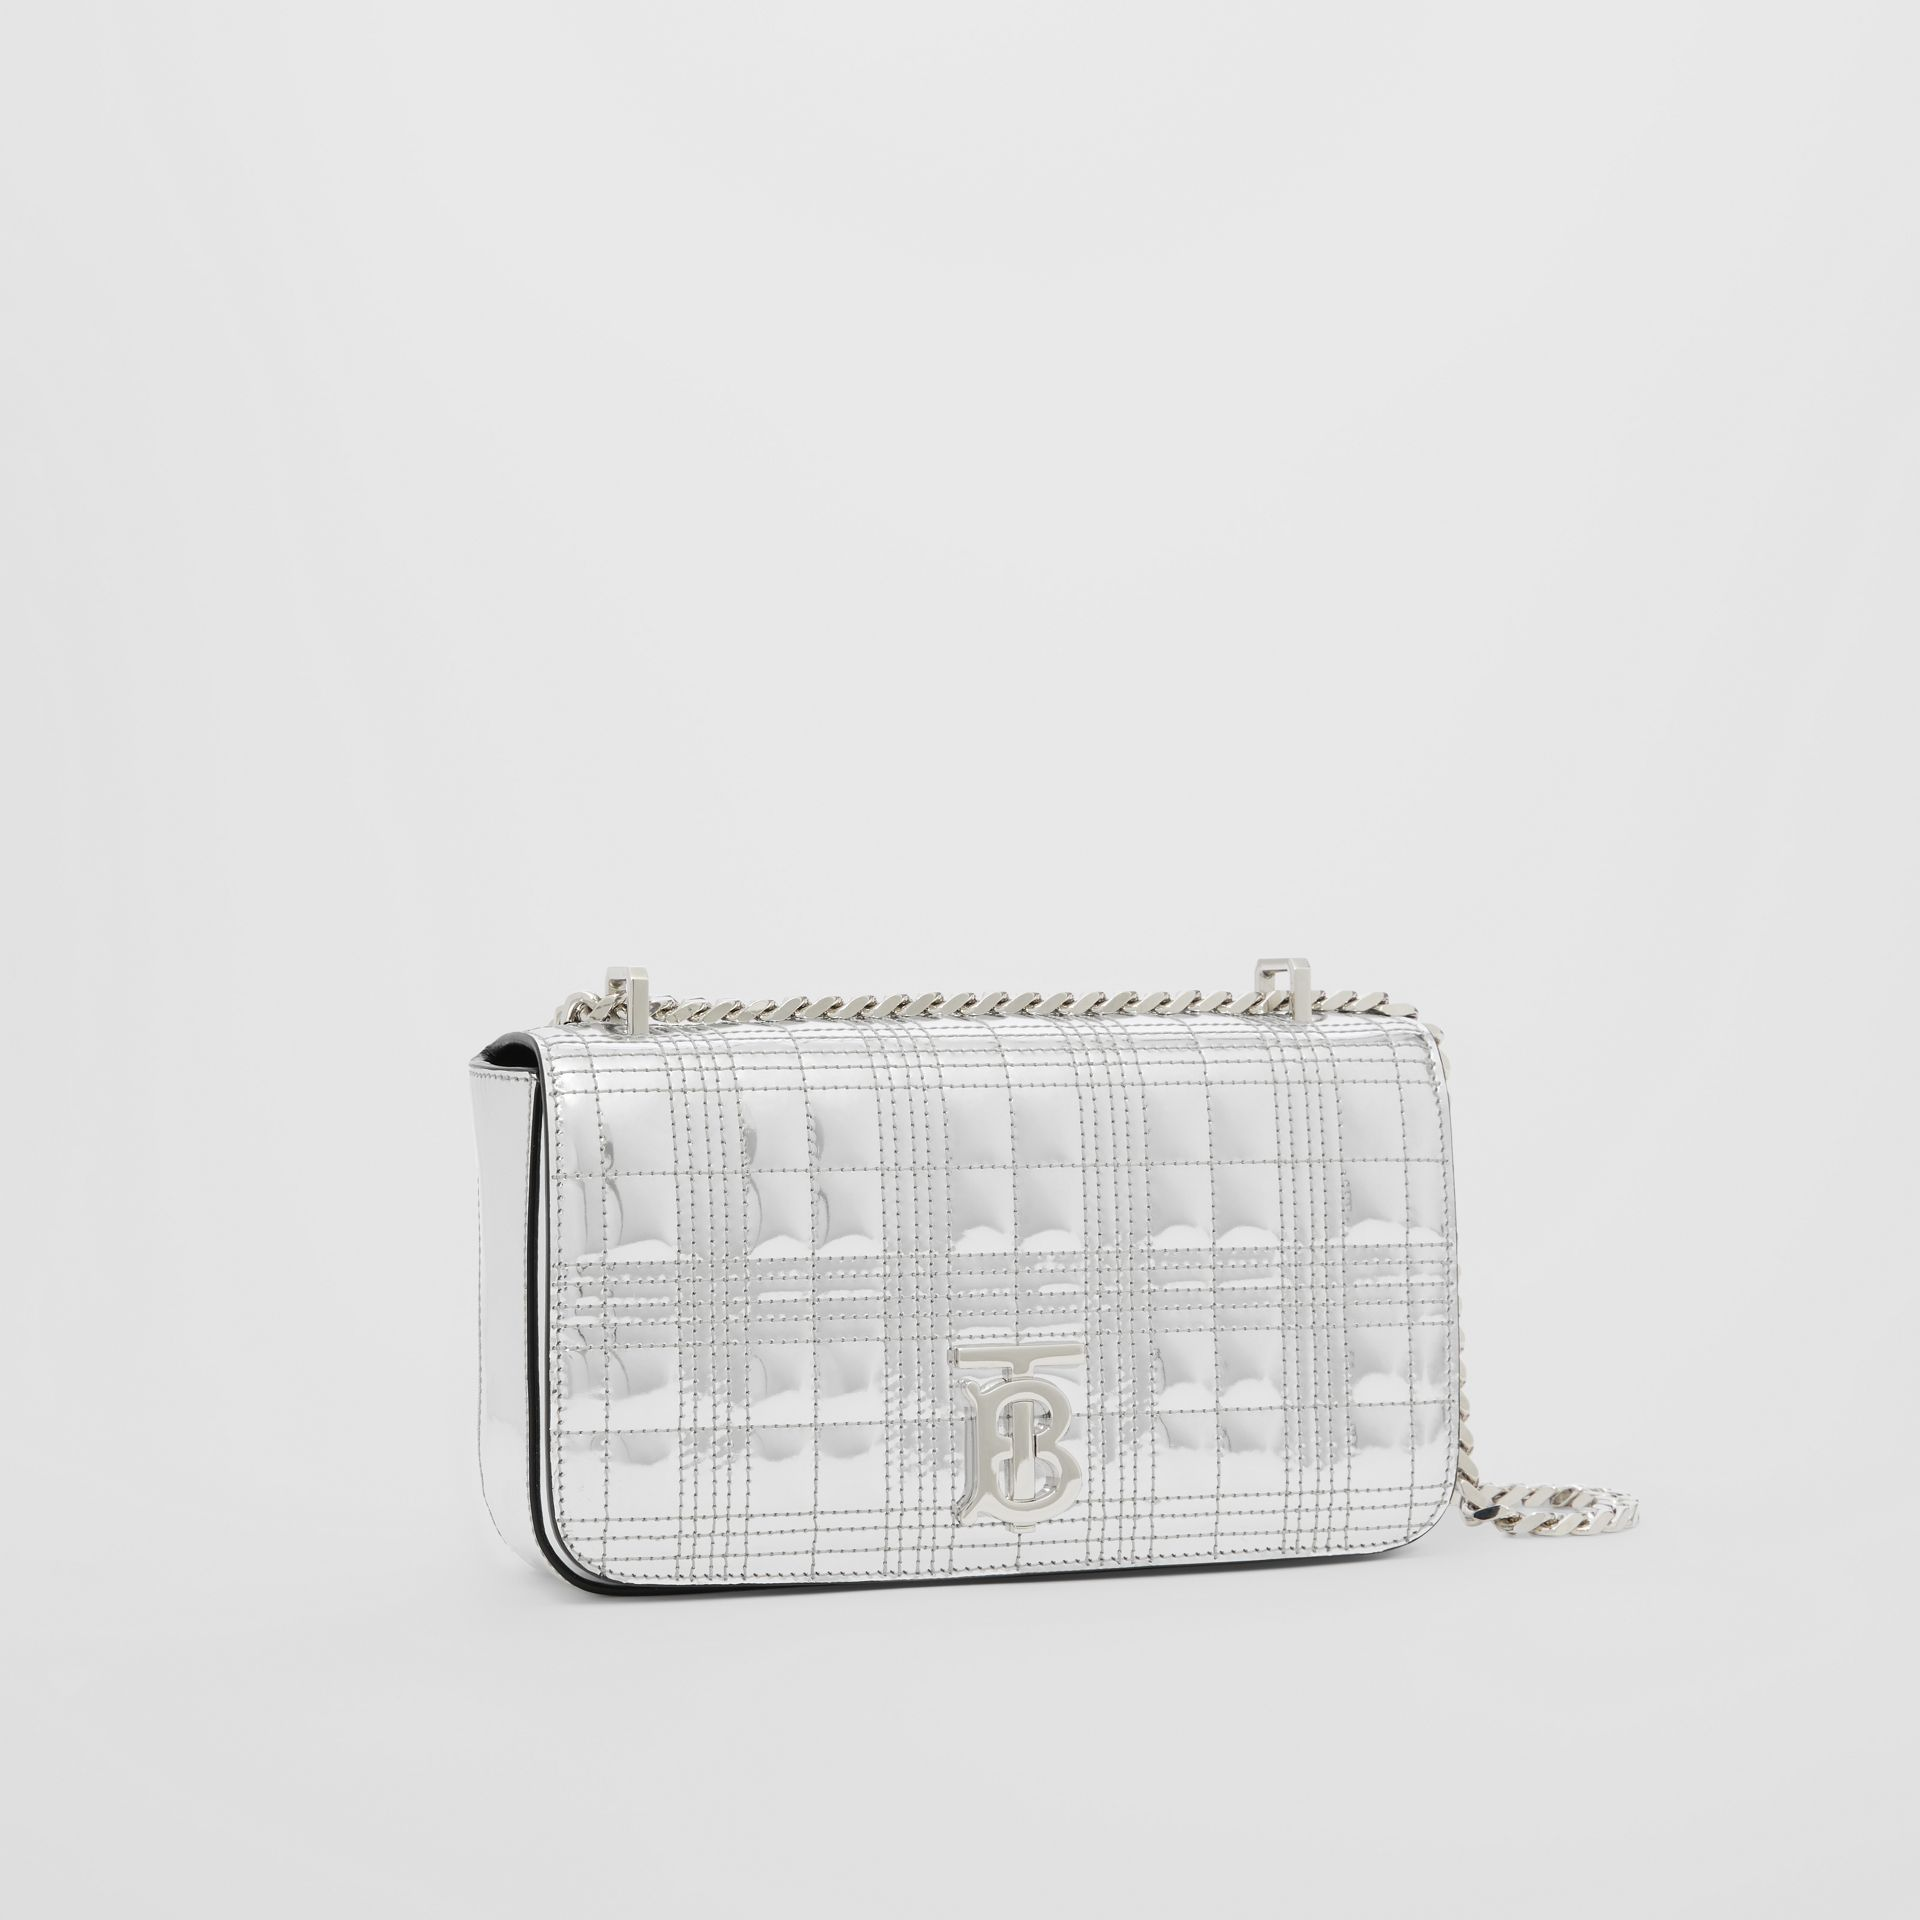 Small Quilted Metallic Leather Lola Bag in Silver - Women | Burberry United Kingdom - gallery image 4